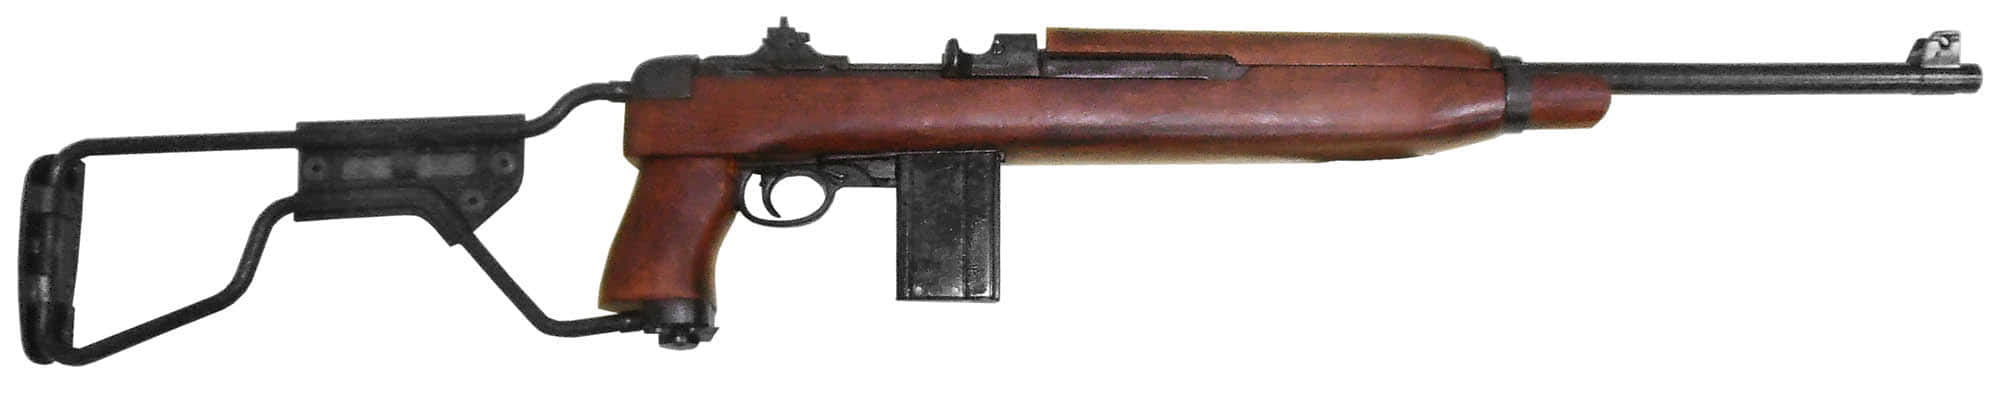 CD1131-Réplique décorative Denix de la carabine américaine M1 Carbine à crosse pliante - CD1131